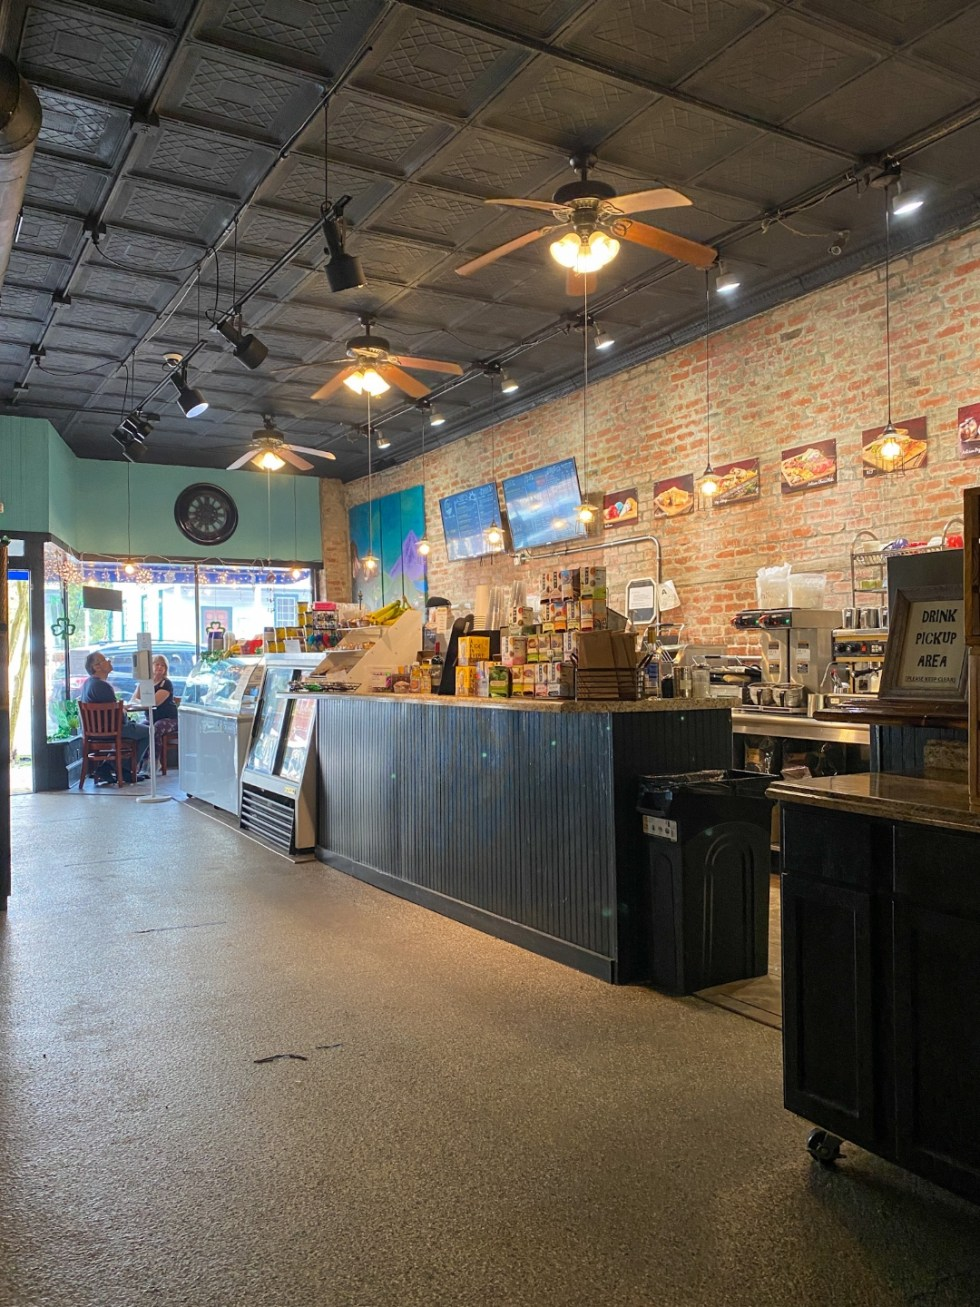 Weekend Travel: The Best Things to Do in Beaufort NC in 48 Hours - I'm Fixin' To - @imfixintoblog |Things to Do in Beaufort NC by popular NC travel blog, I'm Fixin' To: image of Beaufort wine and coffee co.